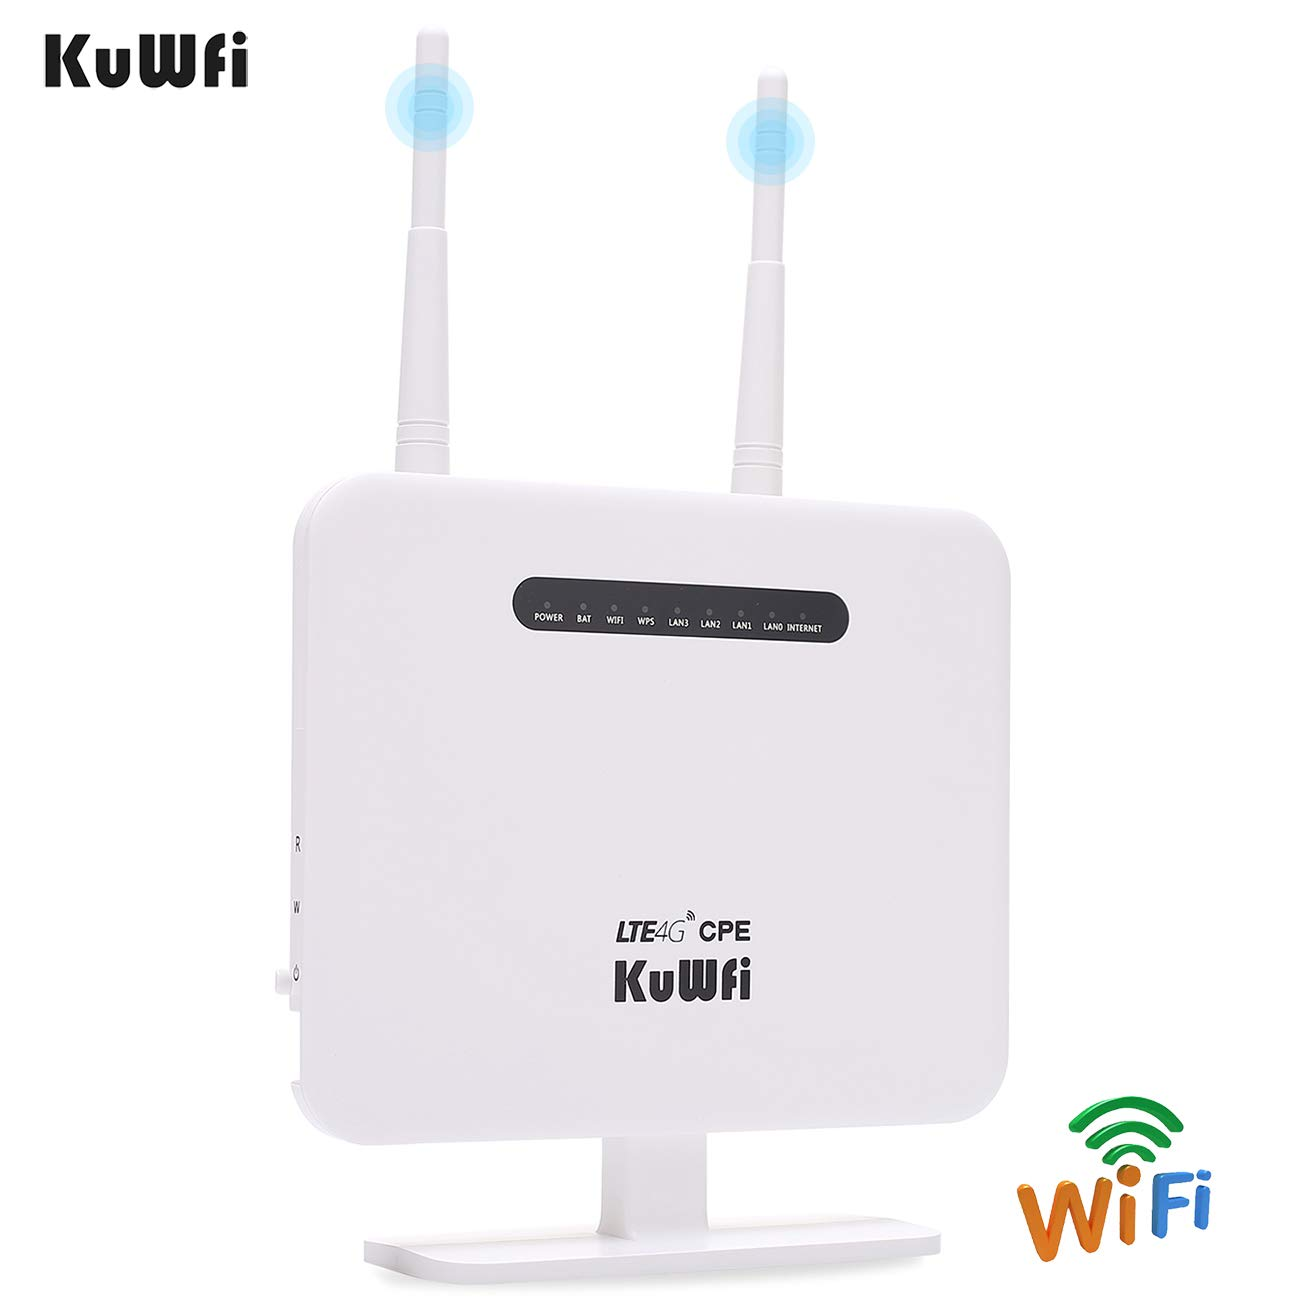 KuWFi 4G LTE CPE Router 300Mbps Unlocked Wireless Routers with SIM Card  Slot 2 Outdoor Antenna 4 LAN Port WiFi Hotspot High Speed for 32 Users Work  in